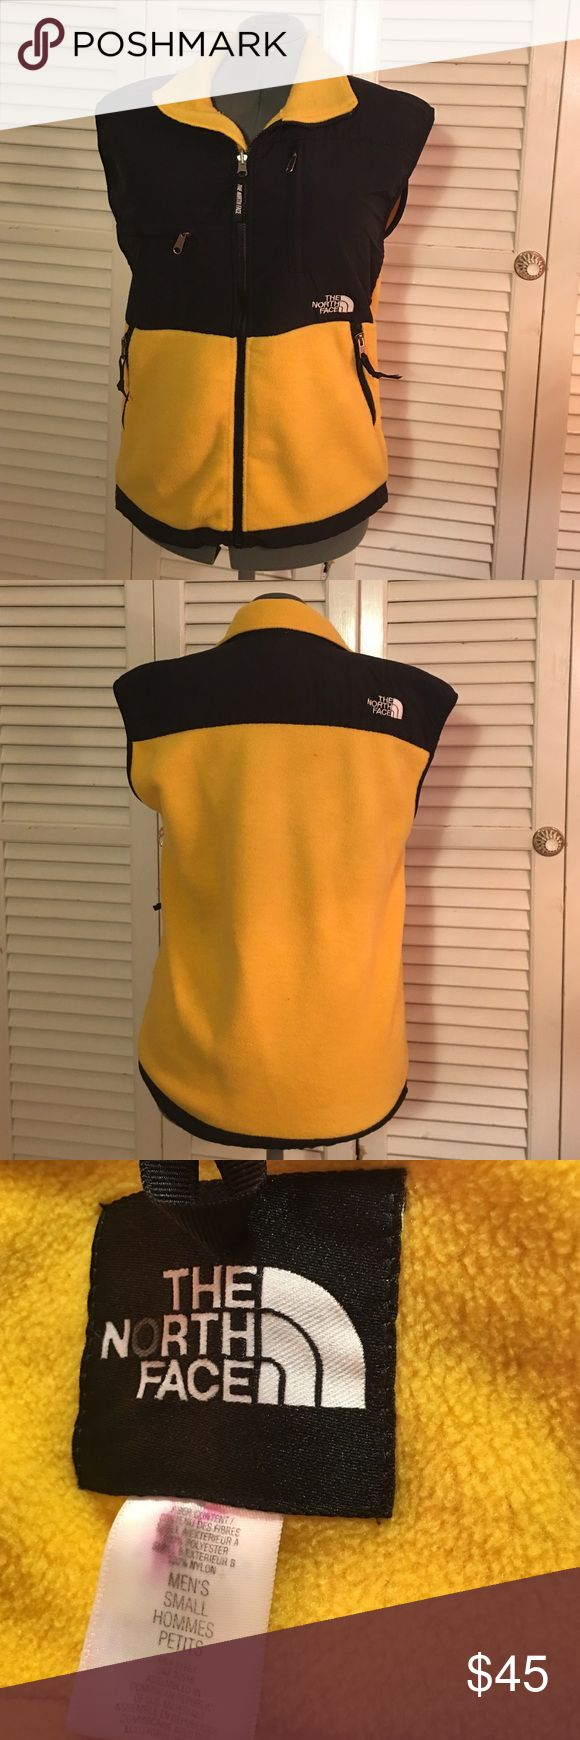 "North Face Denali Fleece Vest The North Face Men's Denali Fleece vest. Yellow + black. Men's size small (could fit a woman). Zip up Fleece vest with multiple pockets. In gently worn, preloved condition (has marks on the tag, filled in O, not visible when worn). I DO NOT MODEL LISTINGS. Measurements approx. 26"" length, 20.5"" across. Love the item but not the price? Please make offers using the offer button. 🚫POSH ONLY, NO TRADES OR COMMENT OFFERS🚫 North Face Jackets & Coats Vests"